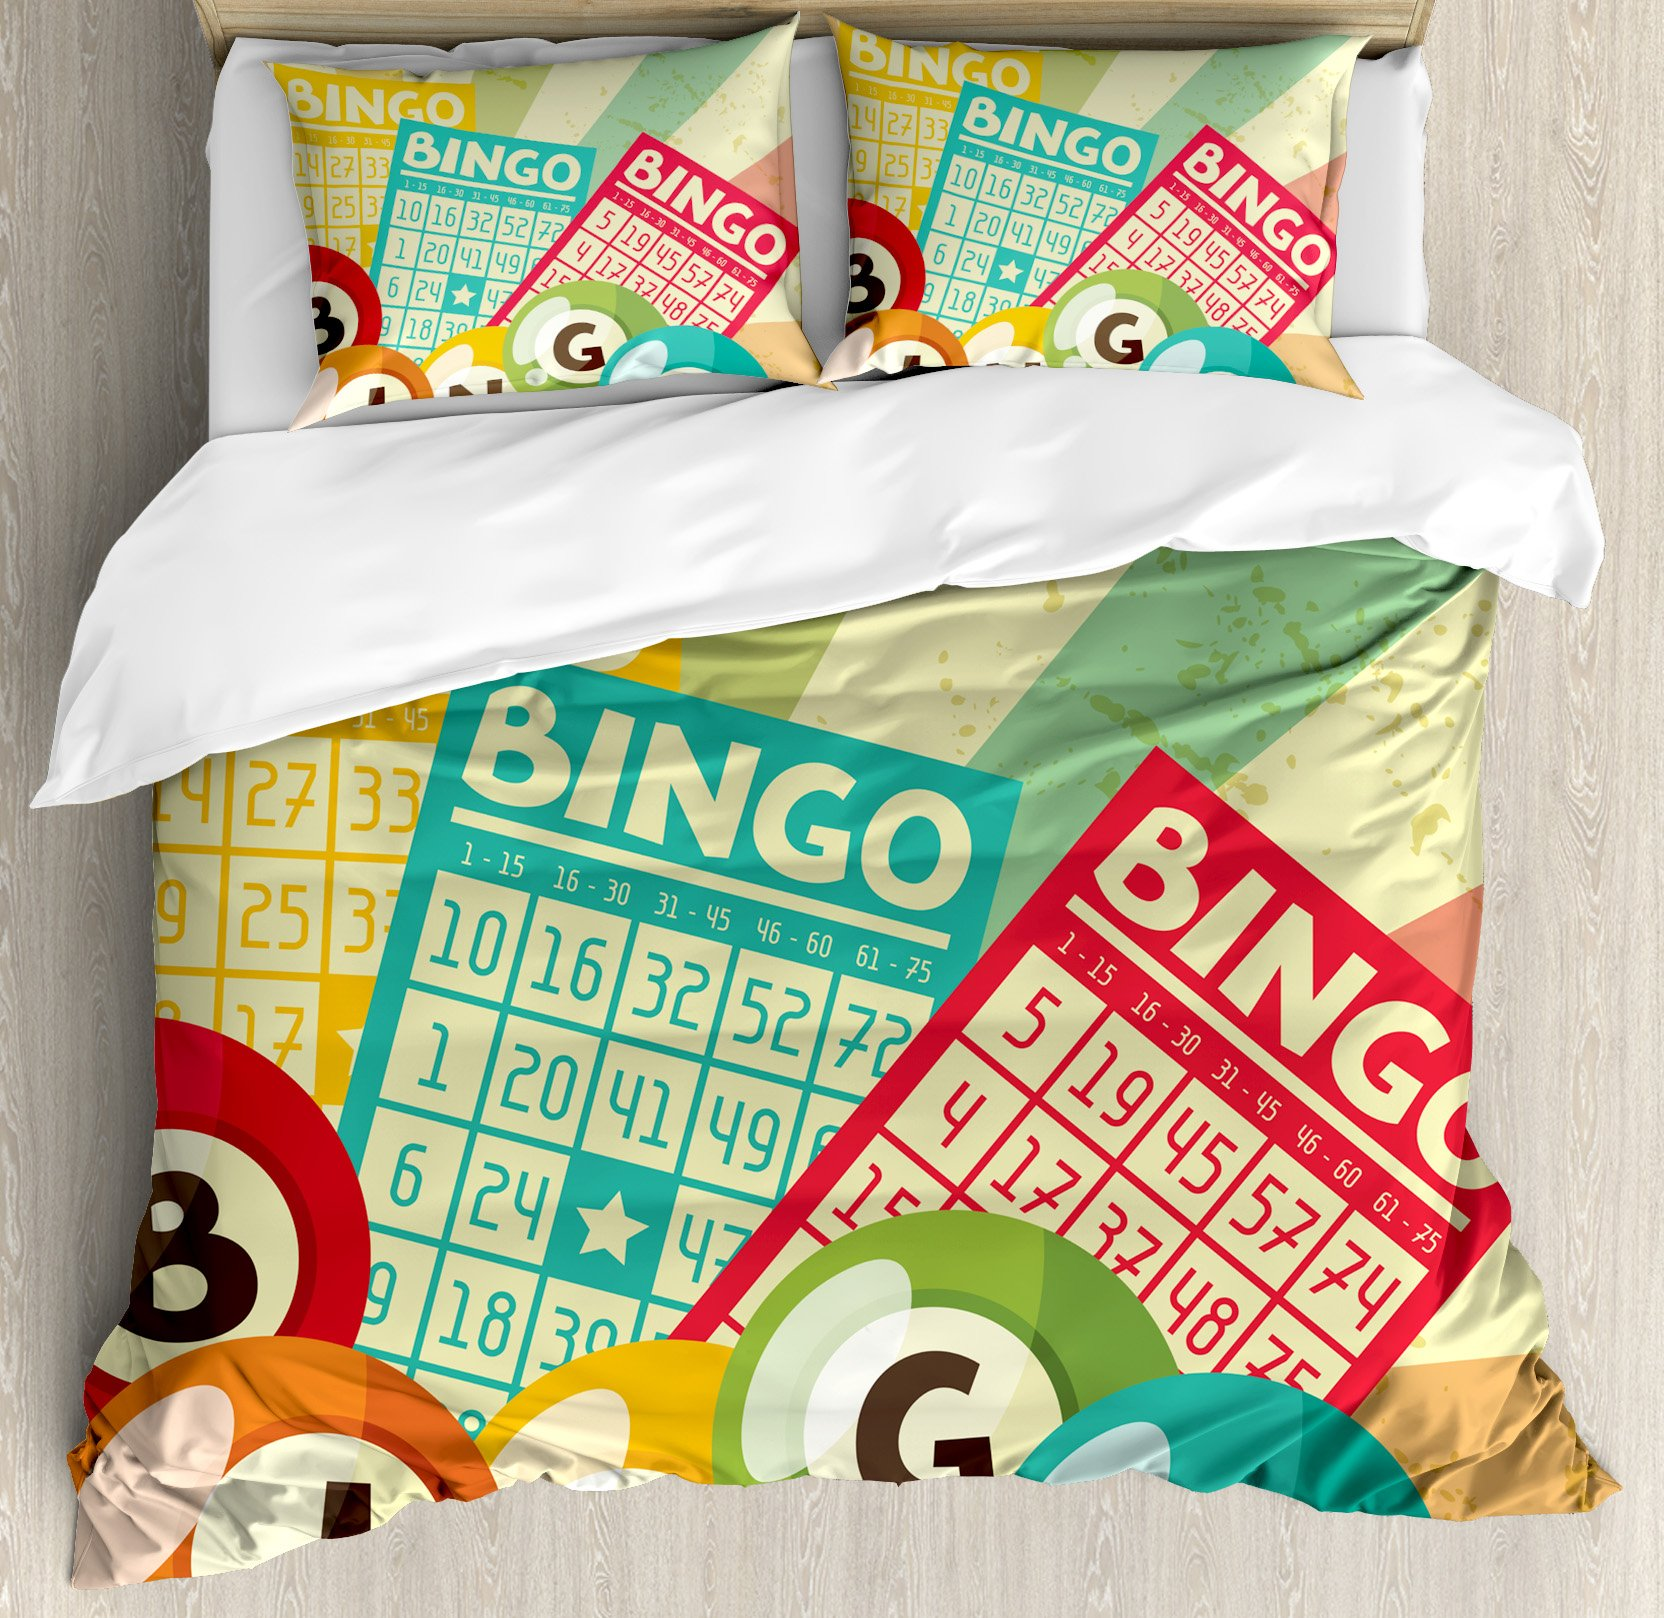 Vintage Decor Duvet Cover Set by Ambesonne, Bingo Game with Ball and Cards Pop Art Stylized Lottery Hobby Celebration Theme, 3 Piece Bedding Set with Pillow Shams, Queen / Full, Multi by Ambesonne